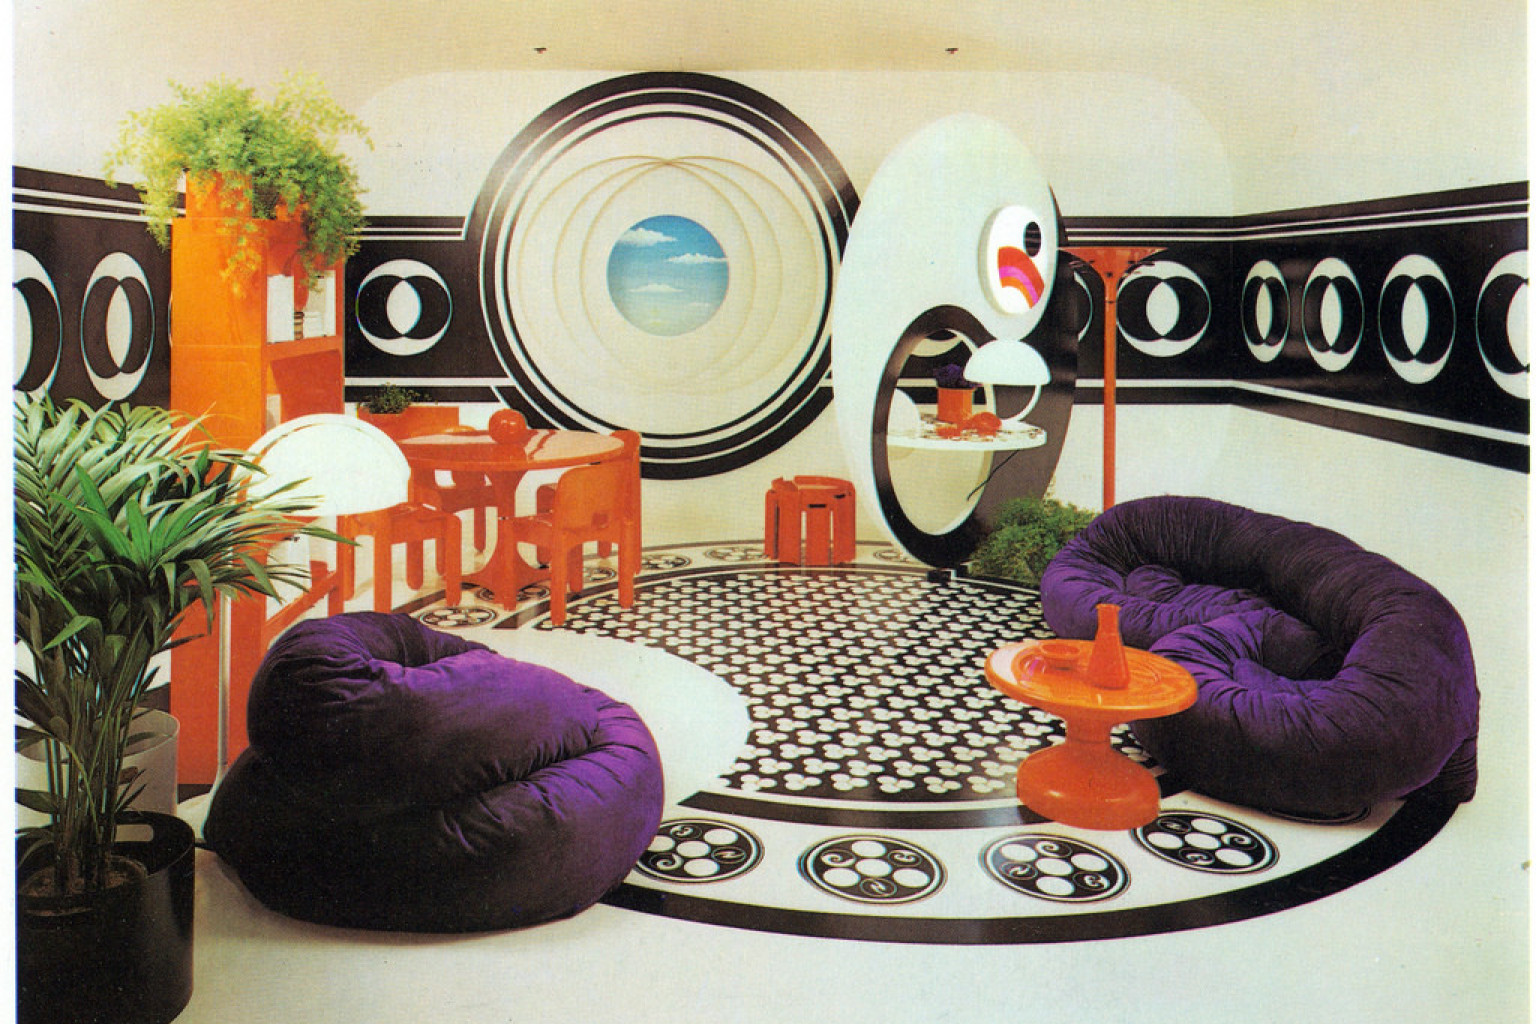 Bloomingdales Vintage Home Photos: A Piece Of Awesomely Retro 70s Interior  Design History | HuffPost